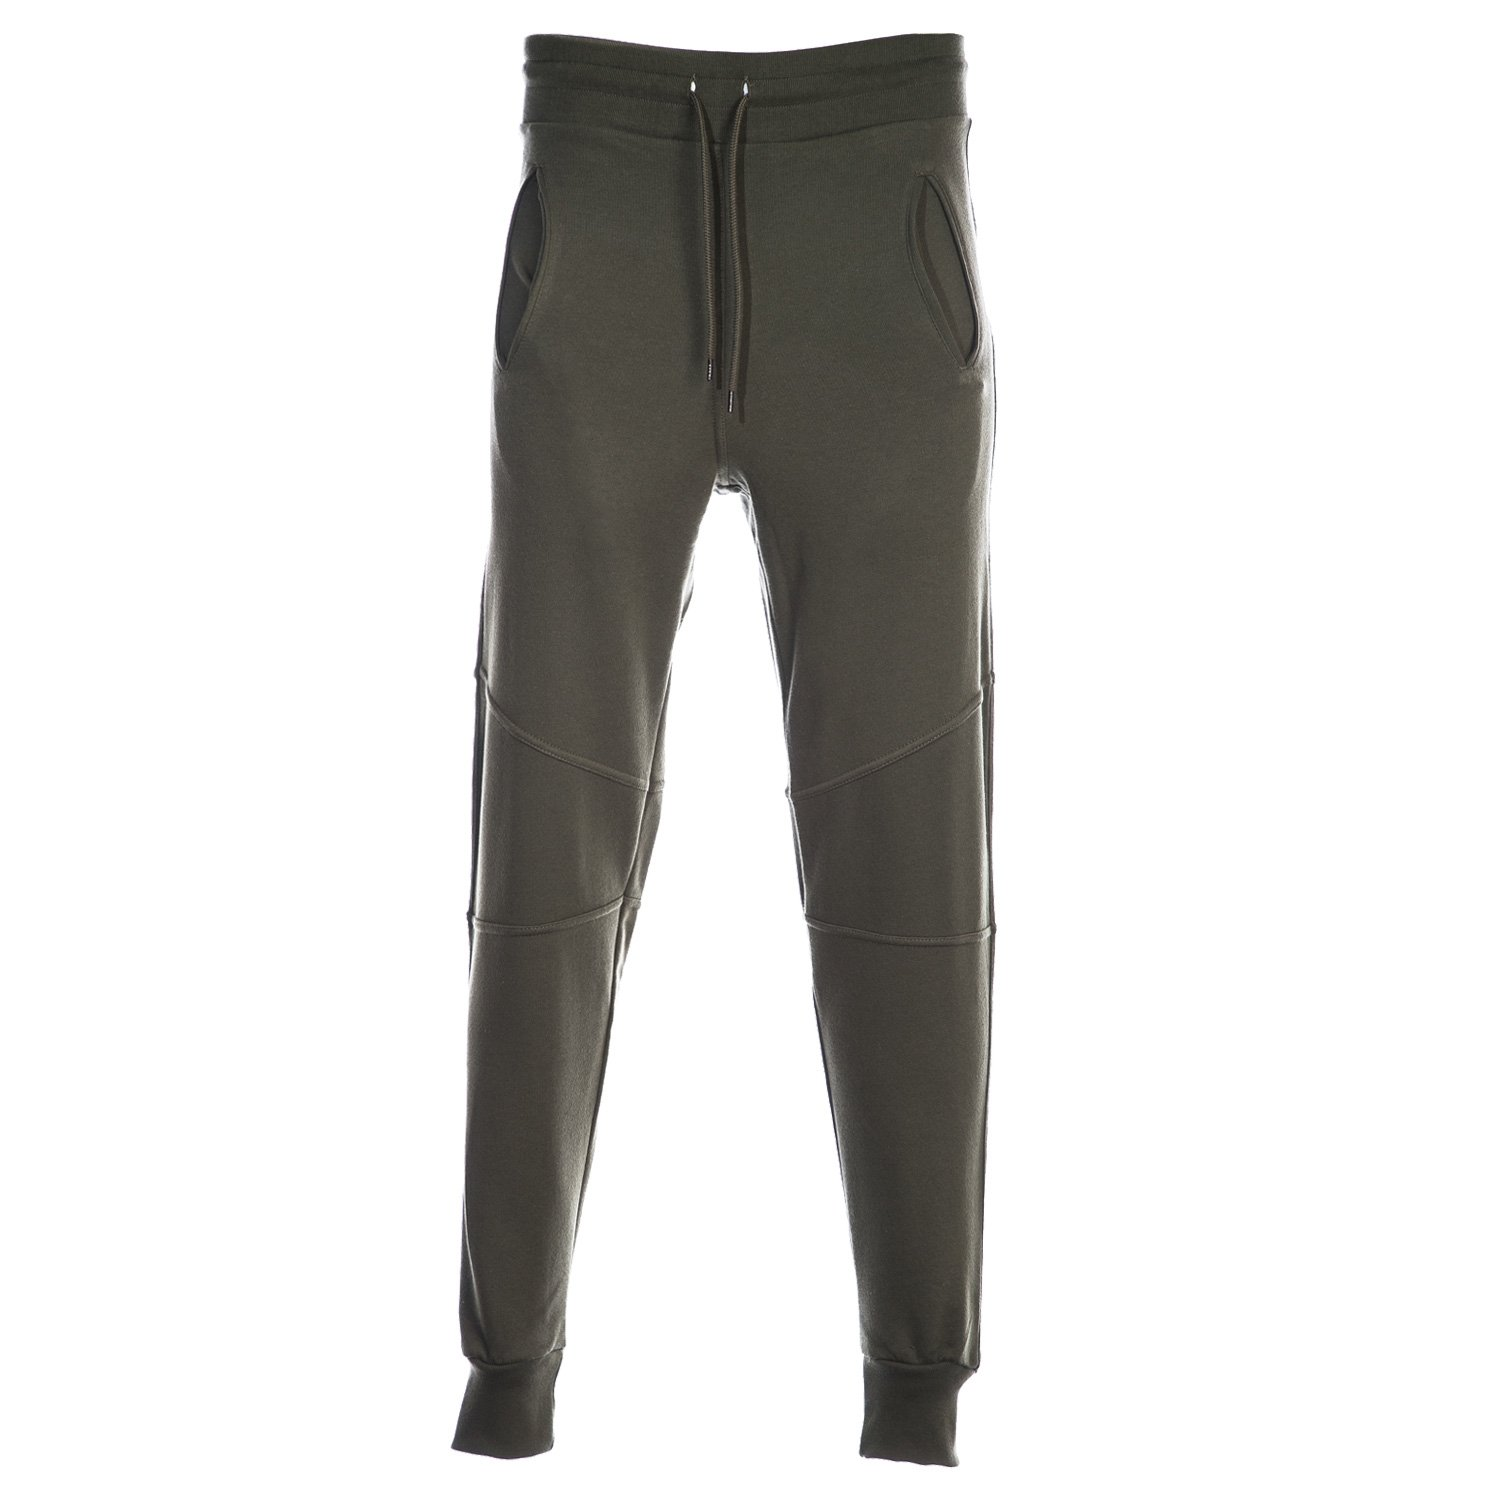 44LDN Slim Fit Sweatpant in Olive